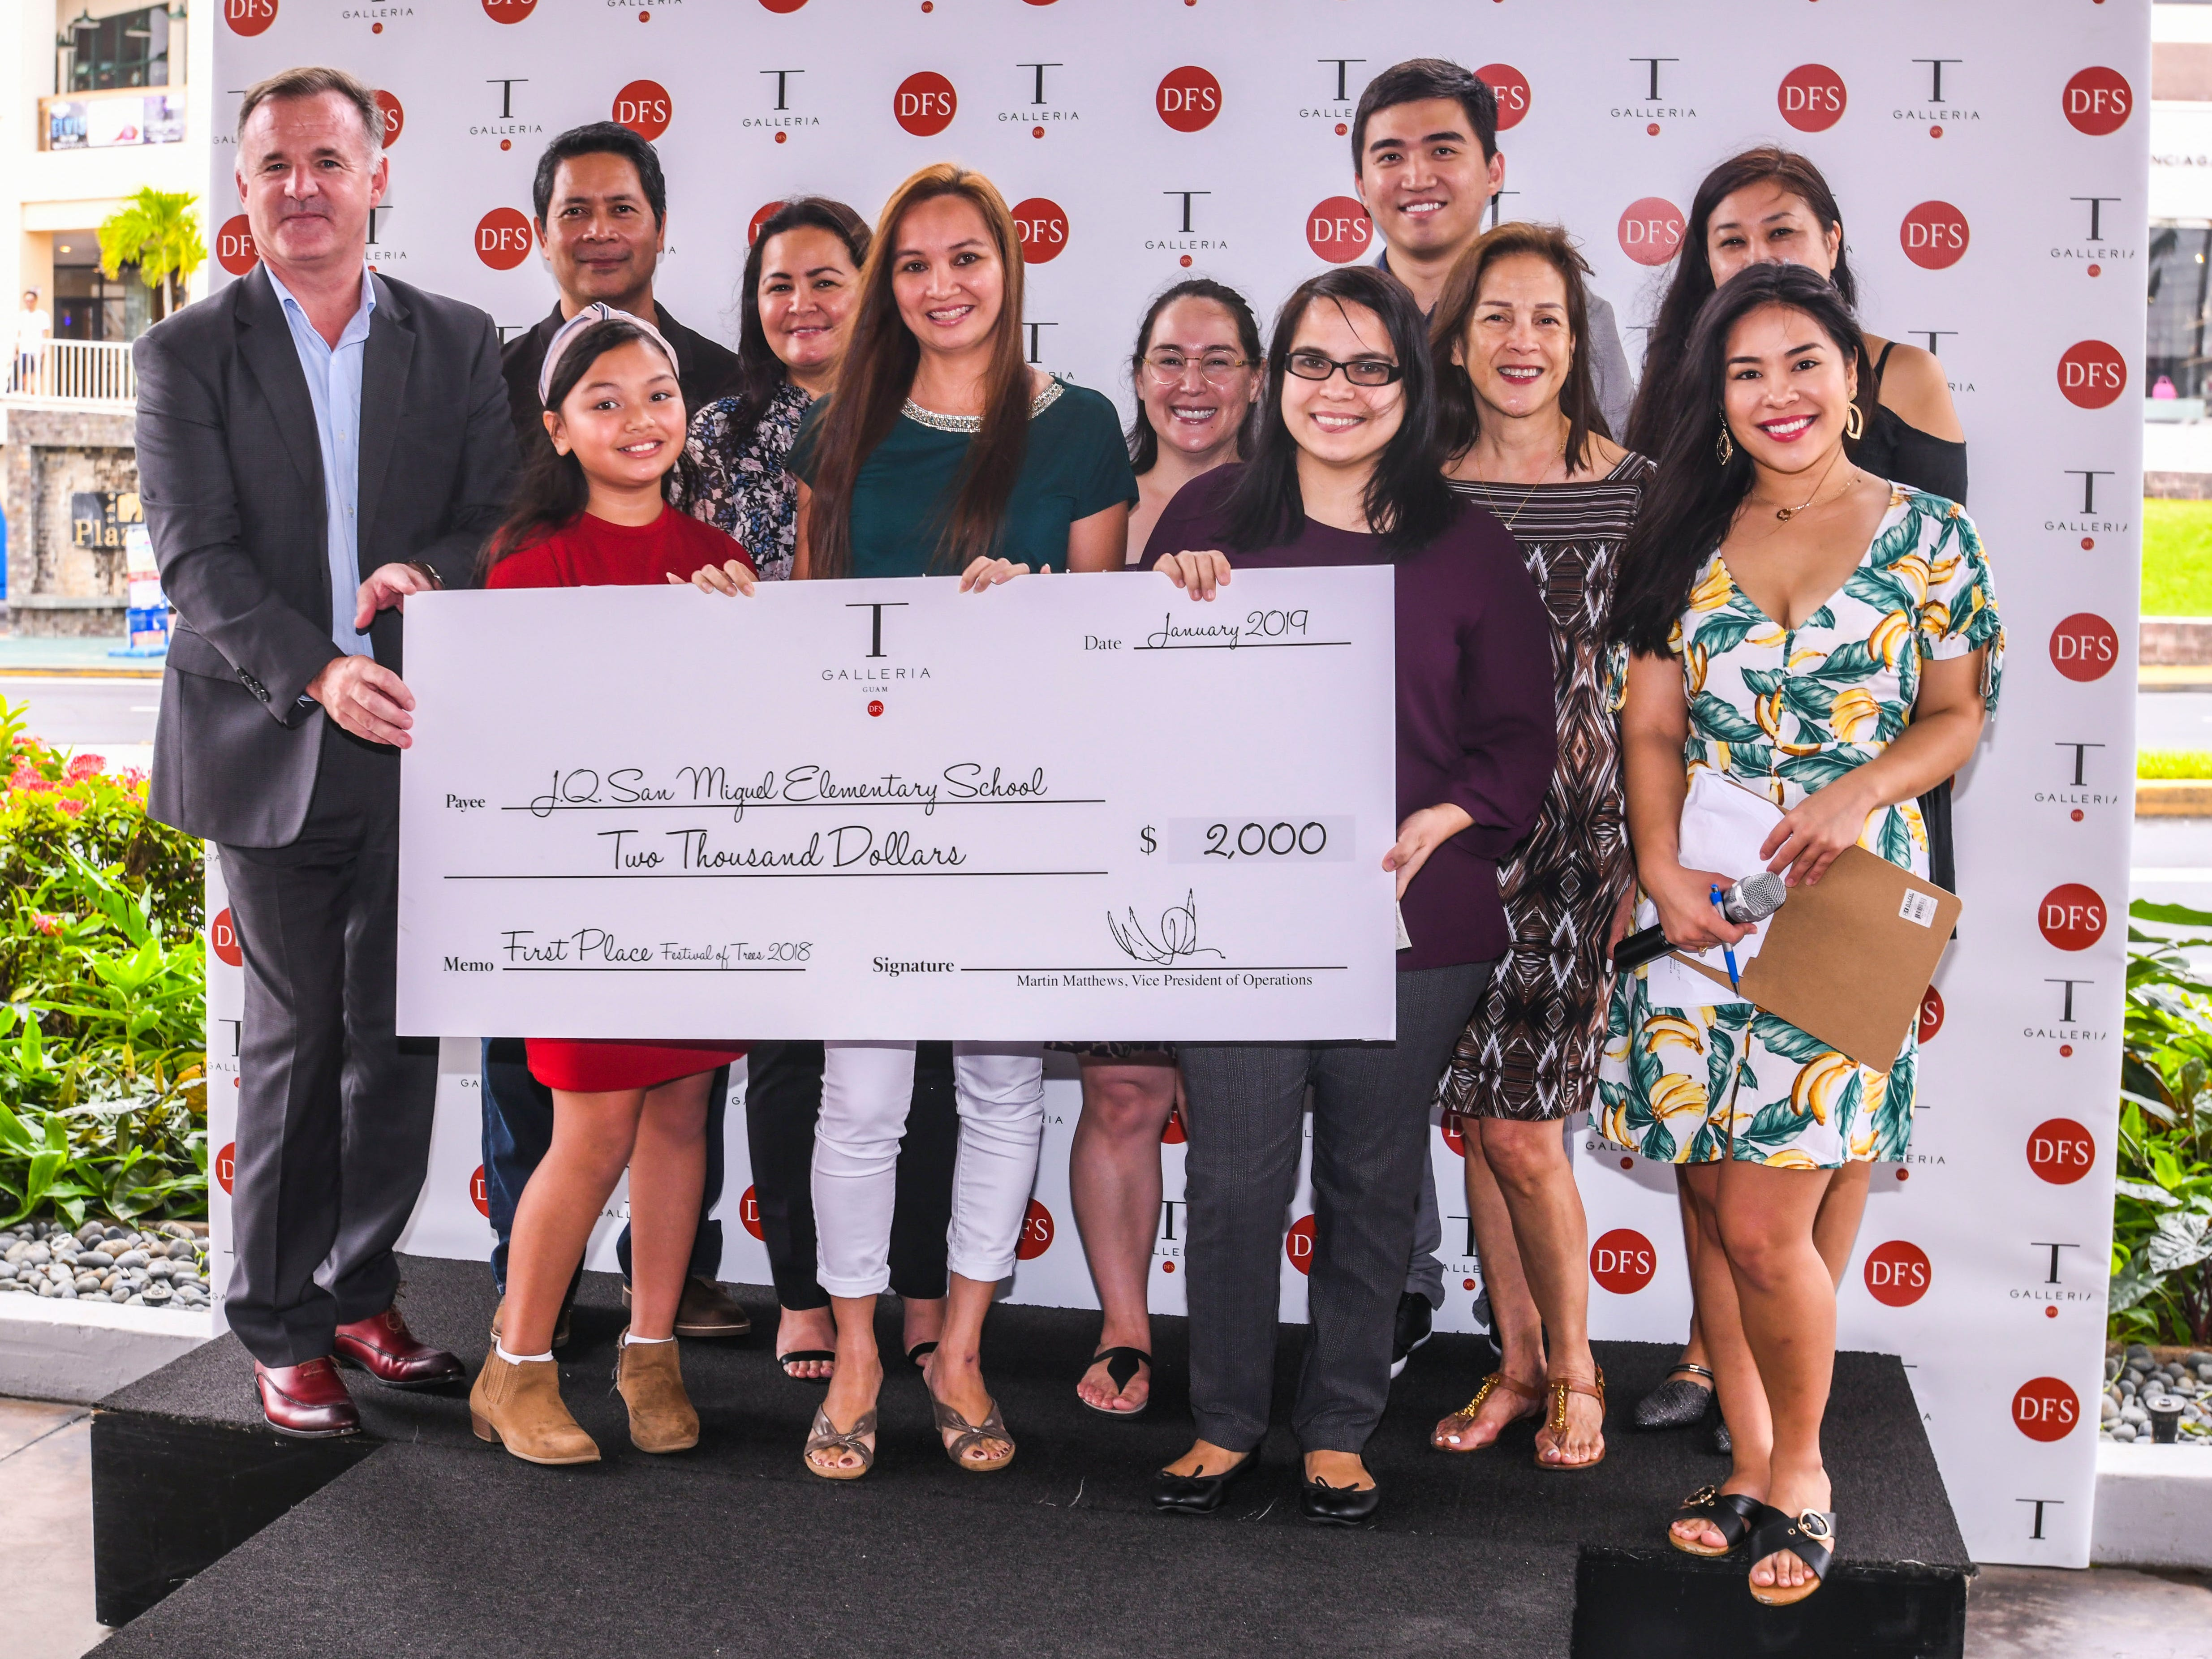 J.Q. San Miquel Elementary School was announced as the first place winner and awarded $2,000 in the 6th annual Festival of Trees competition during a brief ceremony at the T Galleria by DFS in Tumon on Saturday, Jan. 5, 2019.